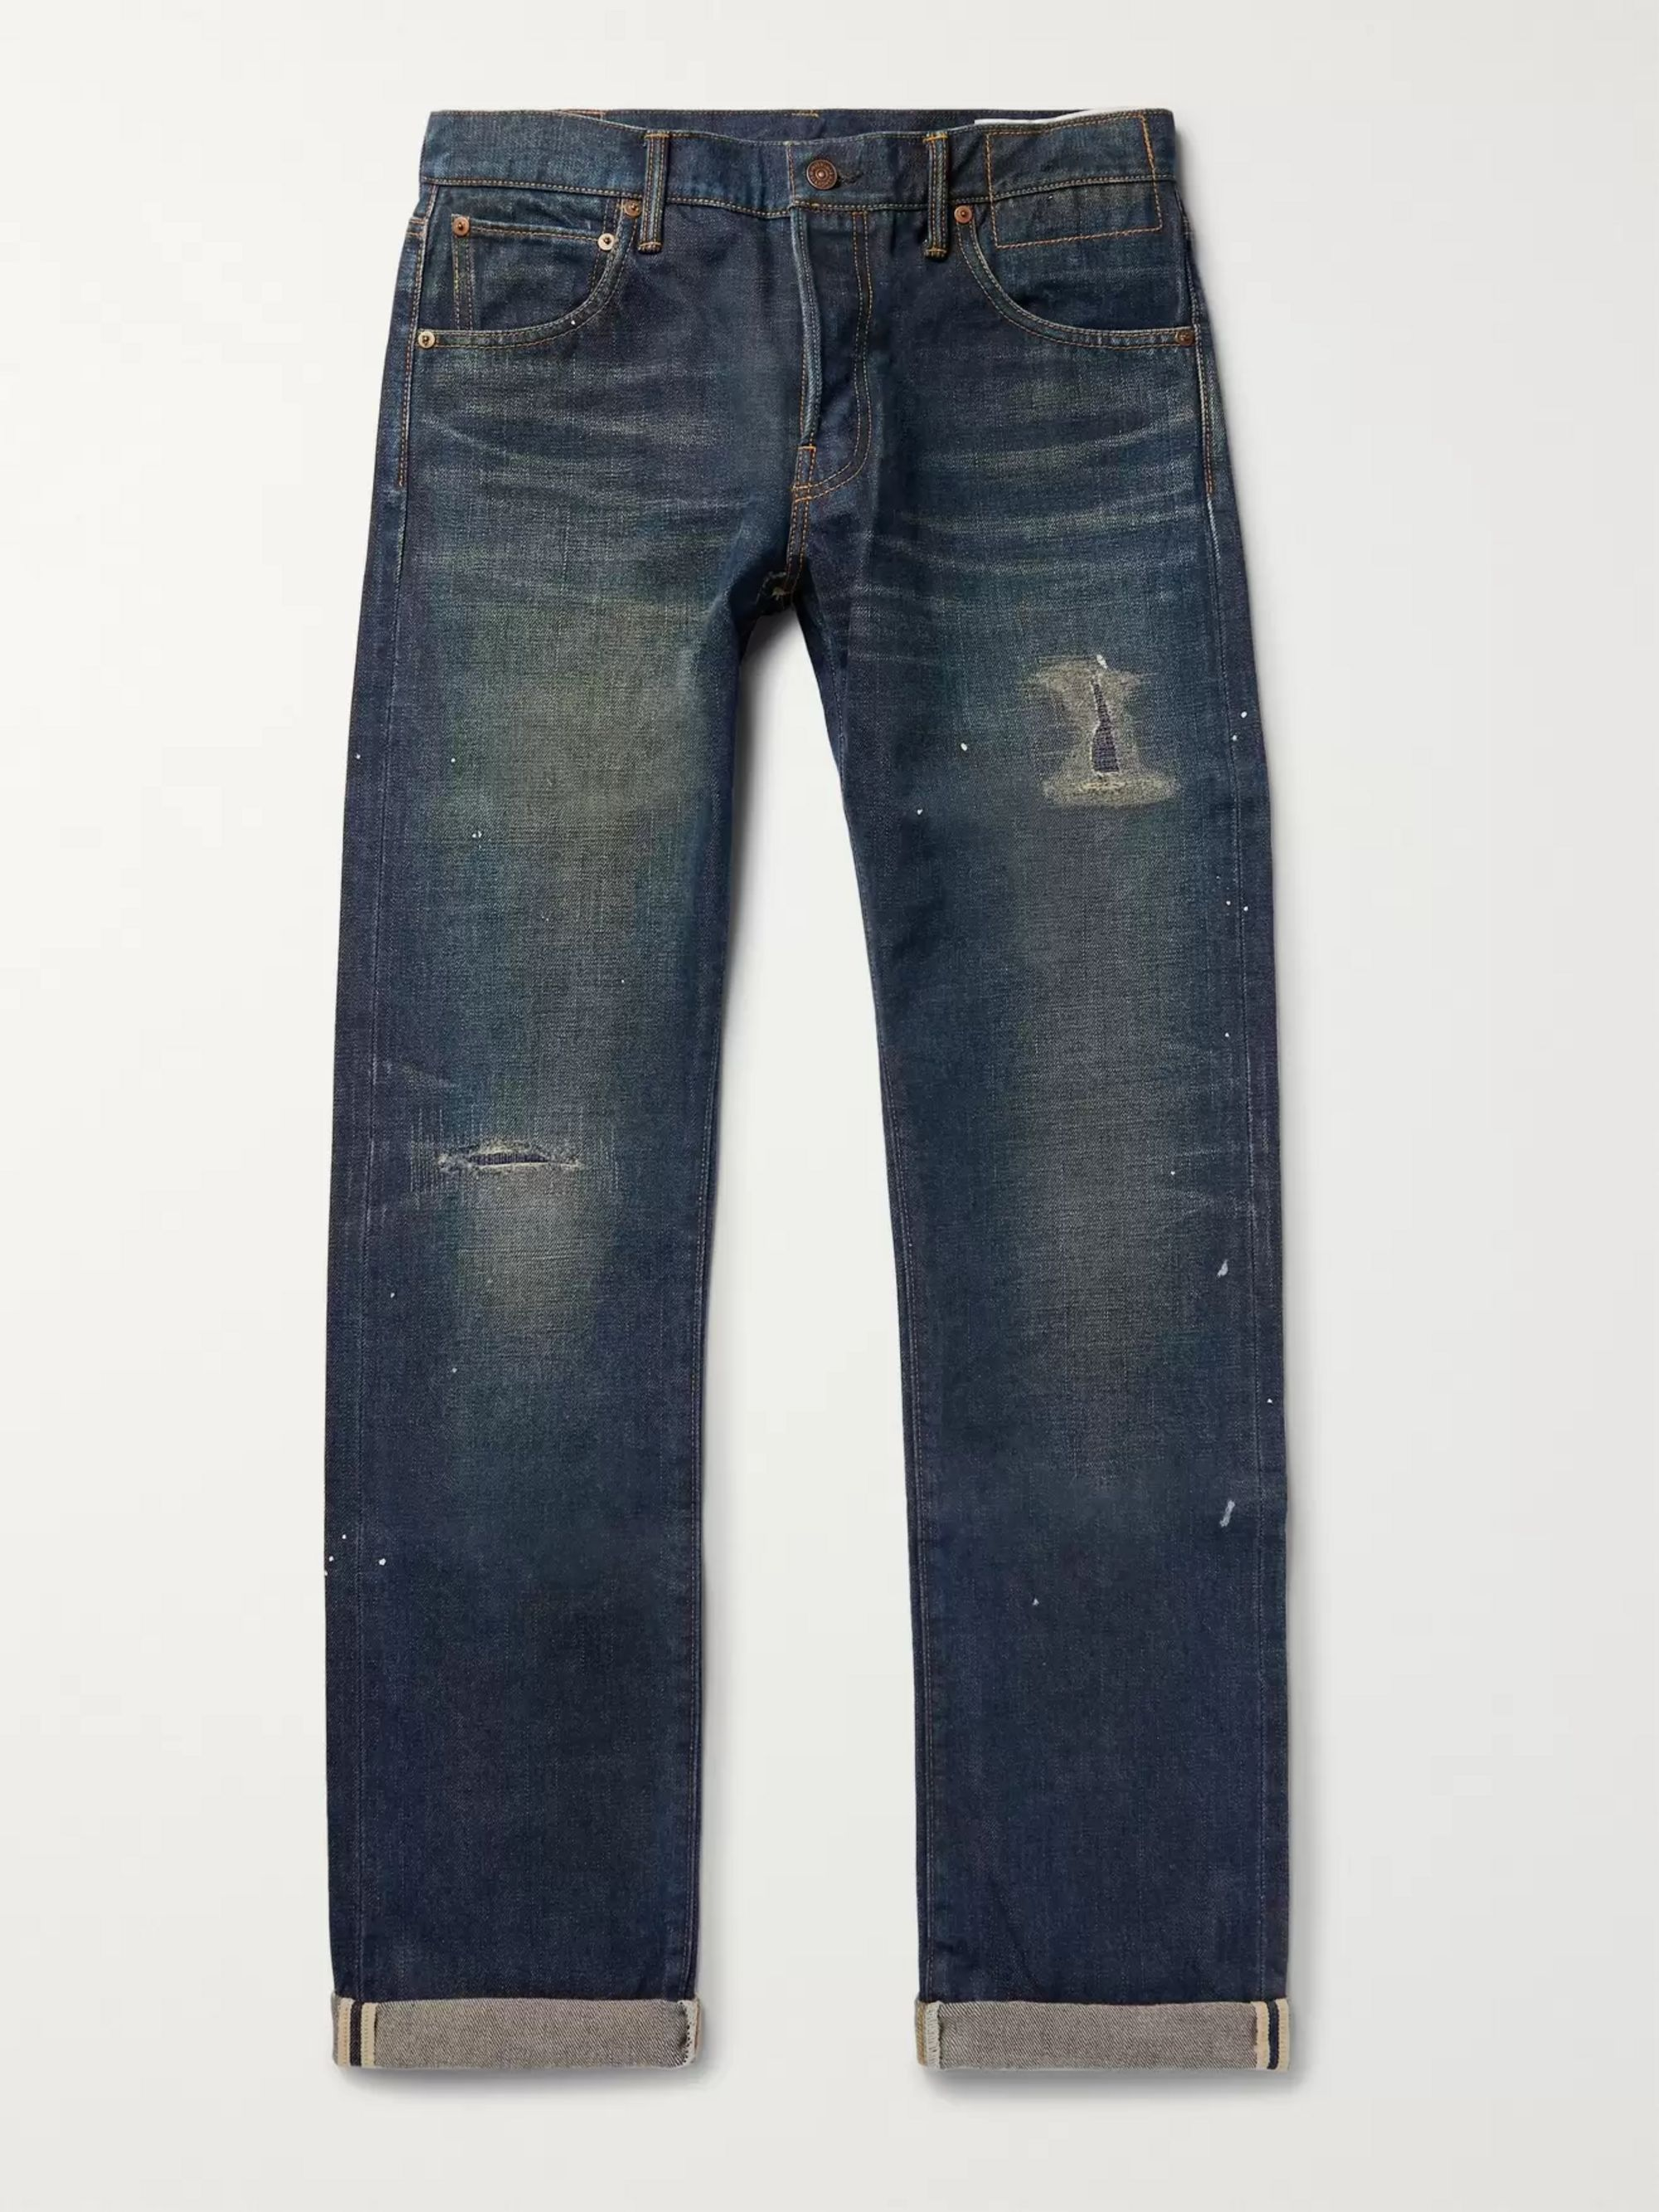 visvim Social Sculpture 01 Slim-Fit Distressed Selvedge Denim Jeans